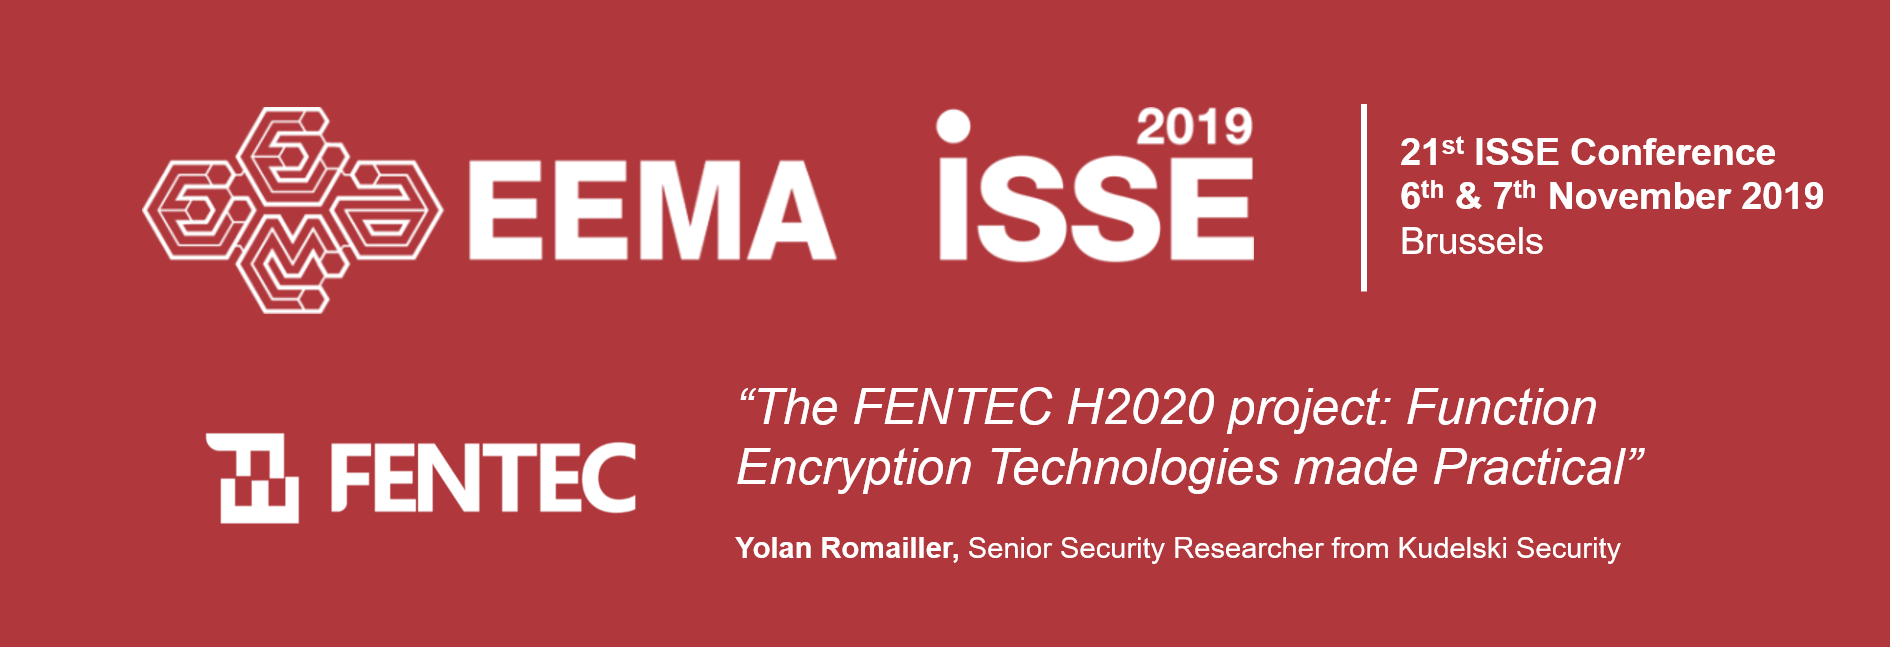 ISSE 2019 Conference